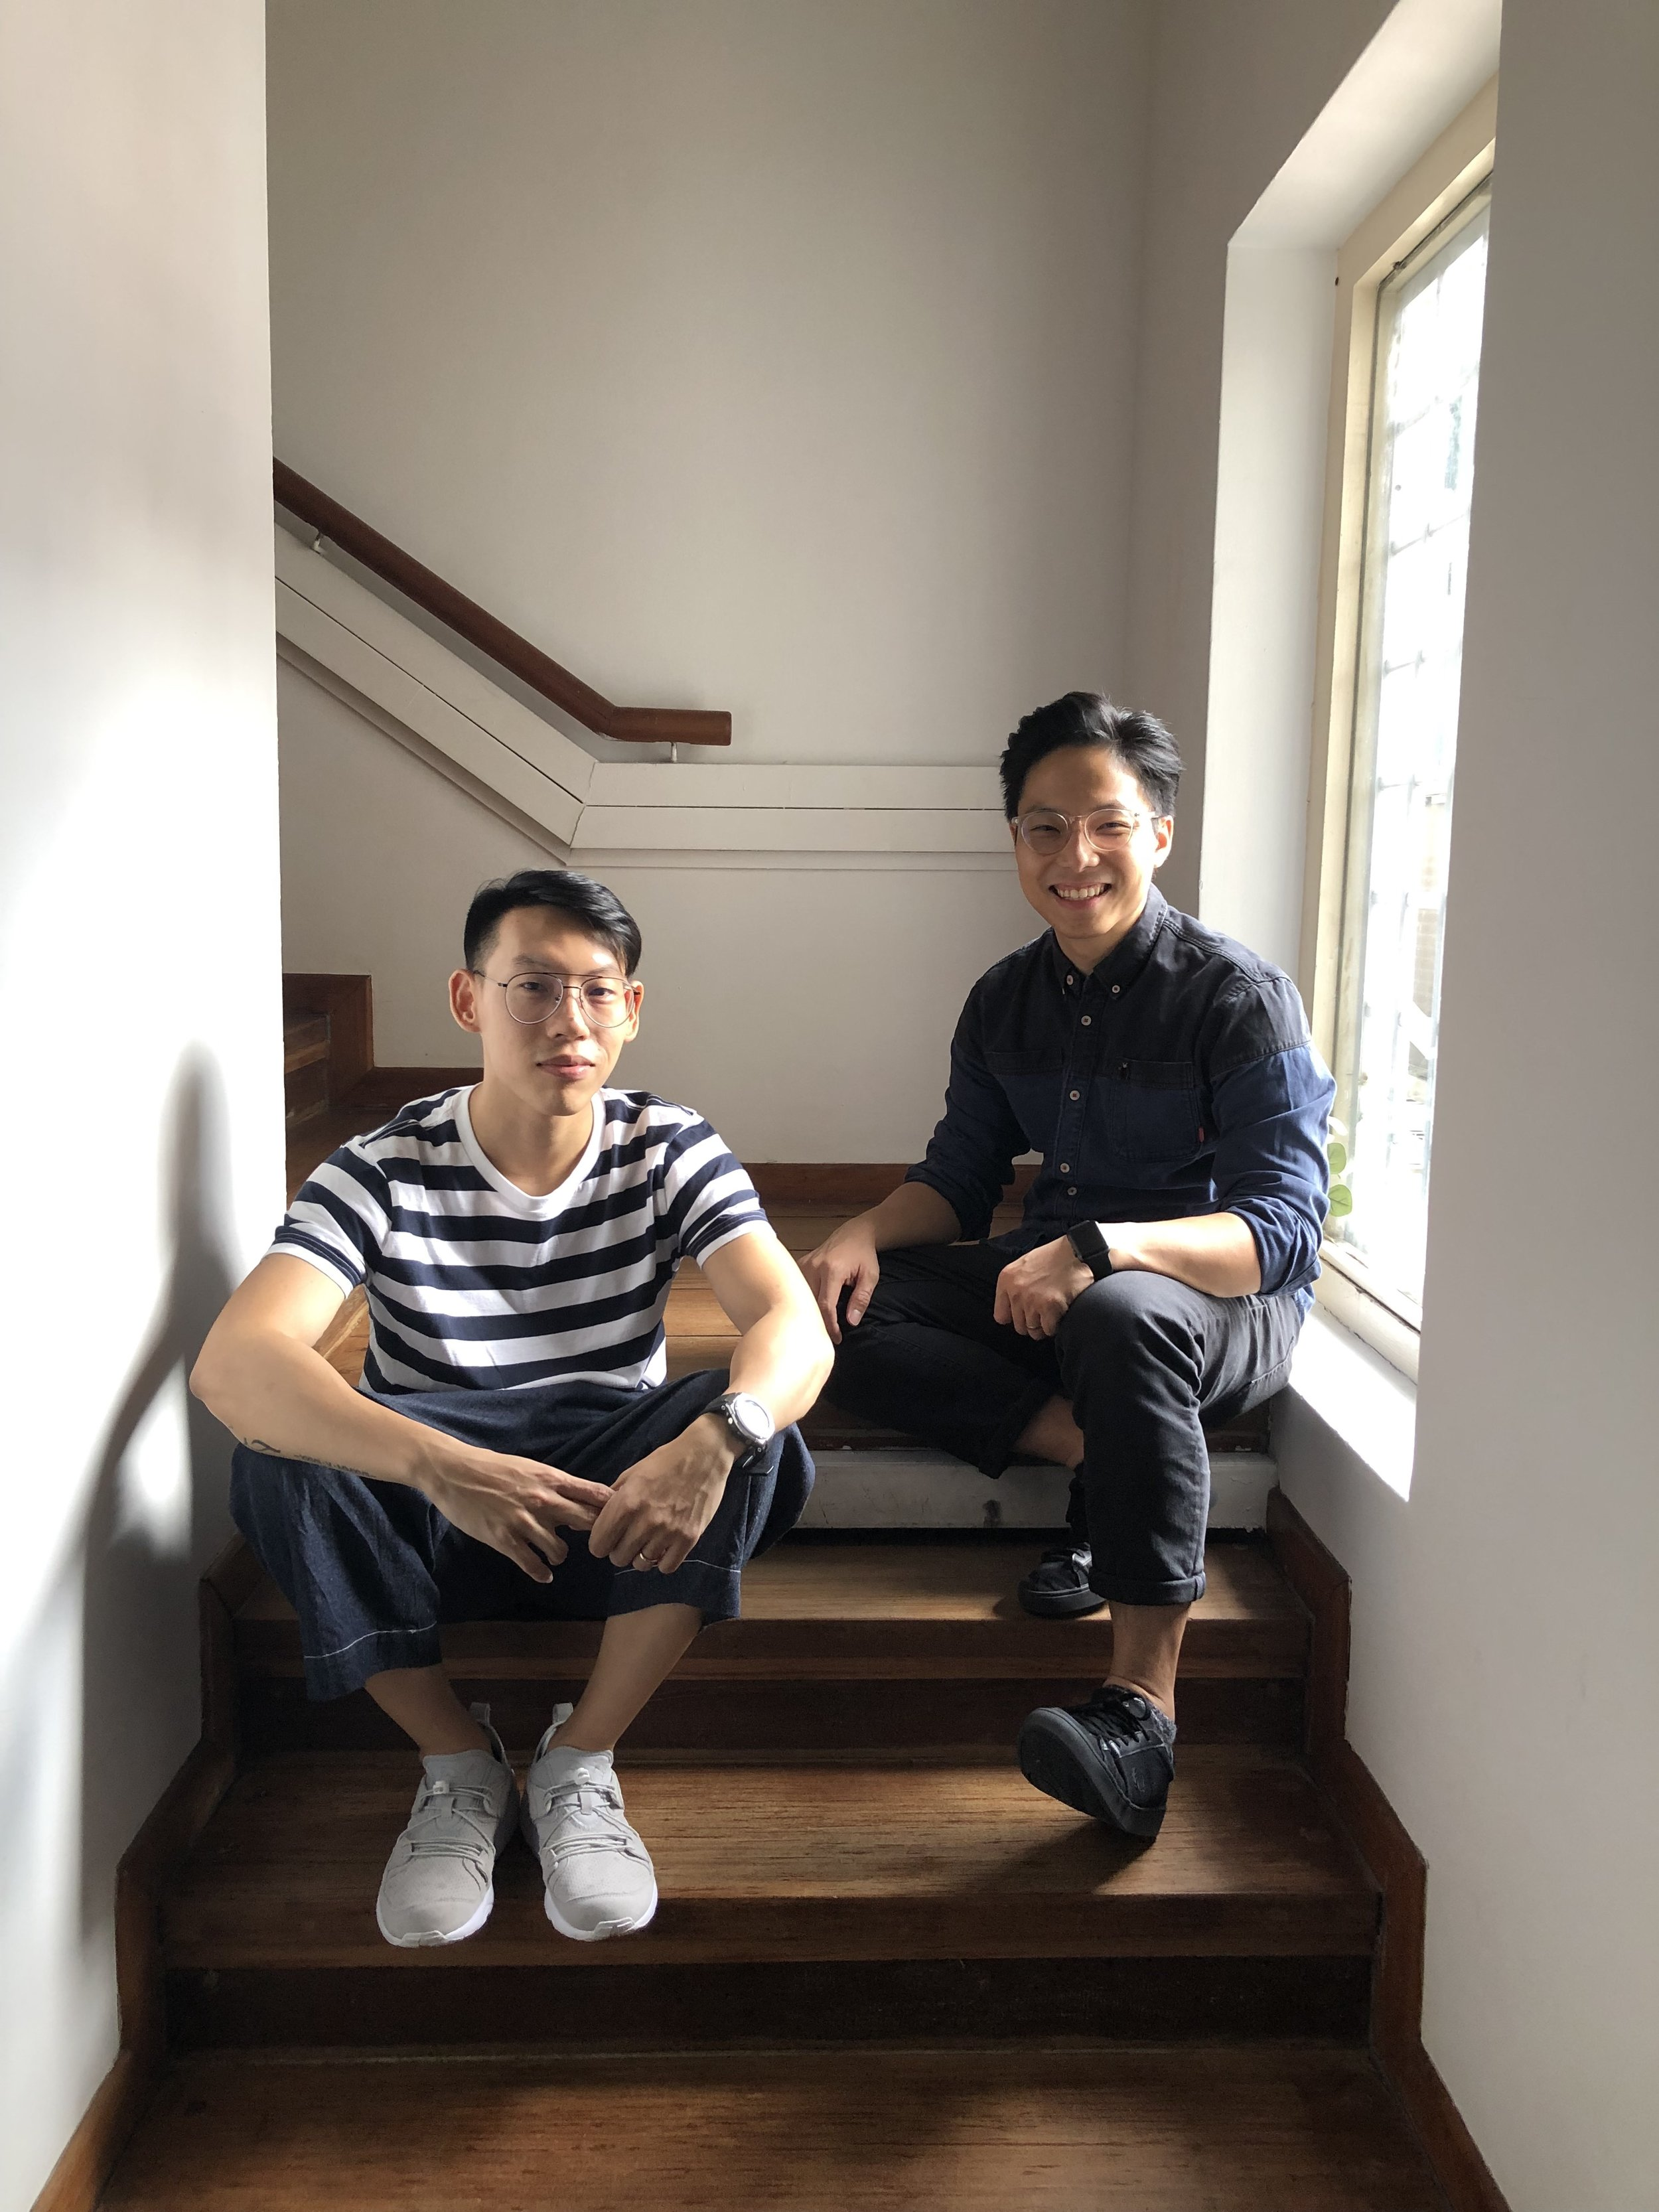 Melvin Ong (left) and Ryan Tan (right), the duo behind BetaBeta